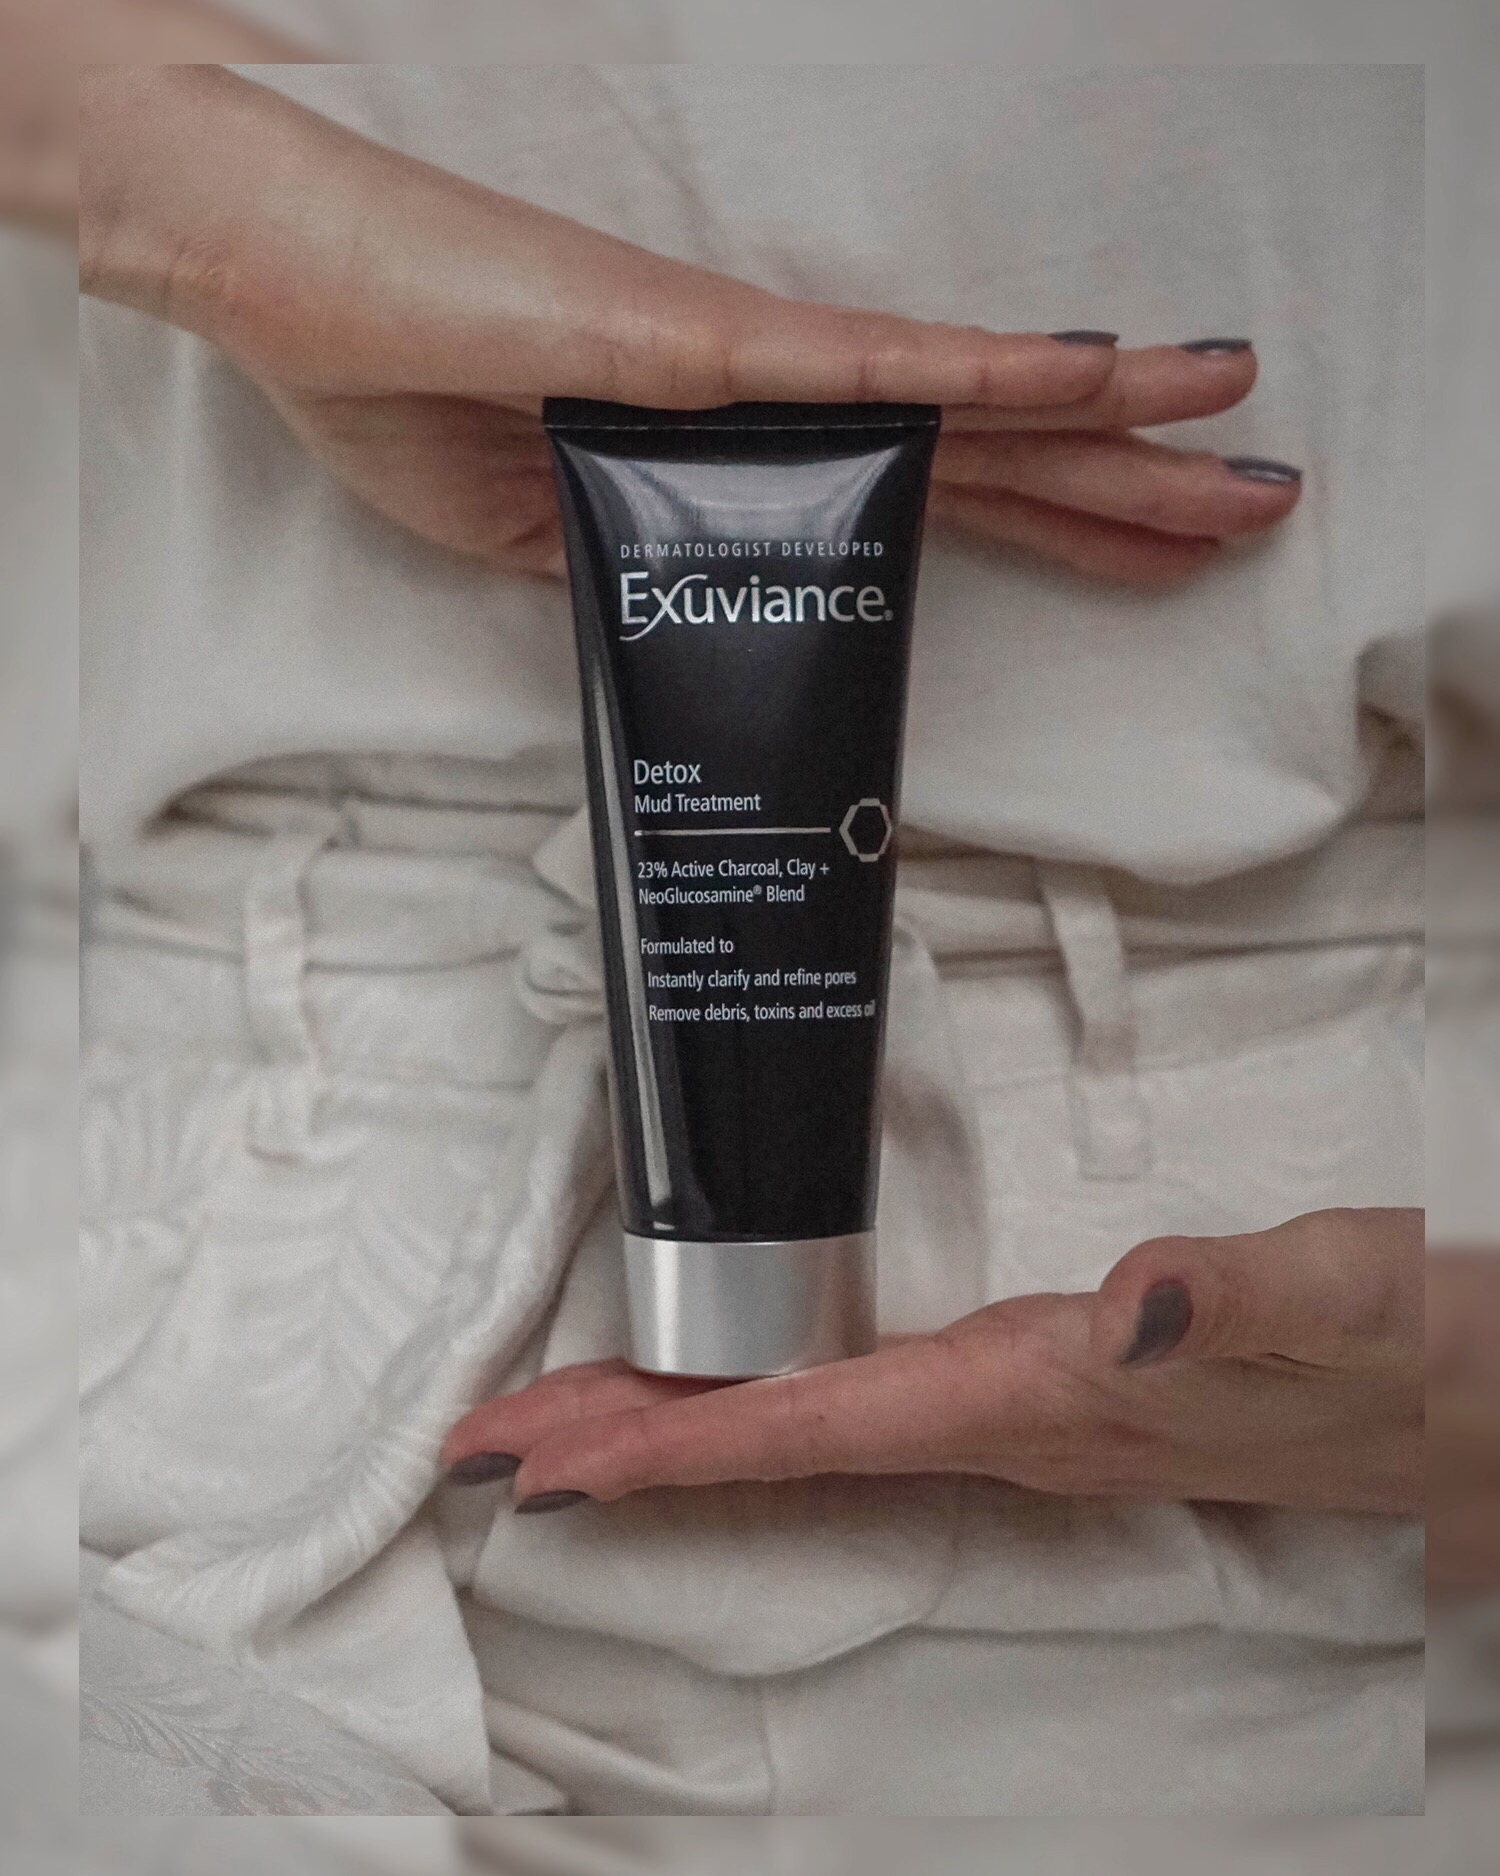 exuviance_detoxmudtreatment_thewhiteocean_beautyblogger_skincare_21